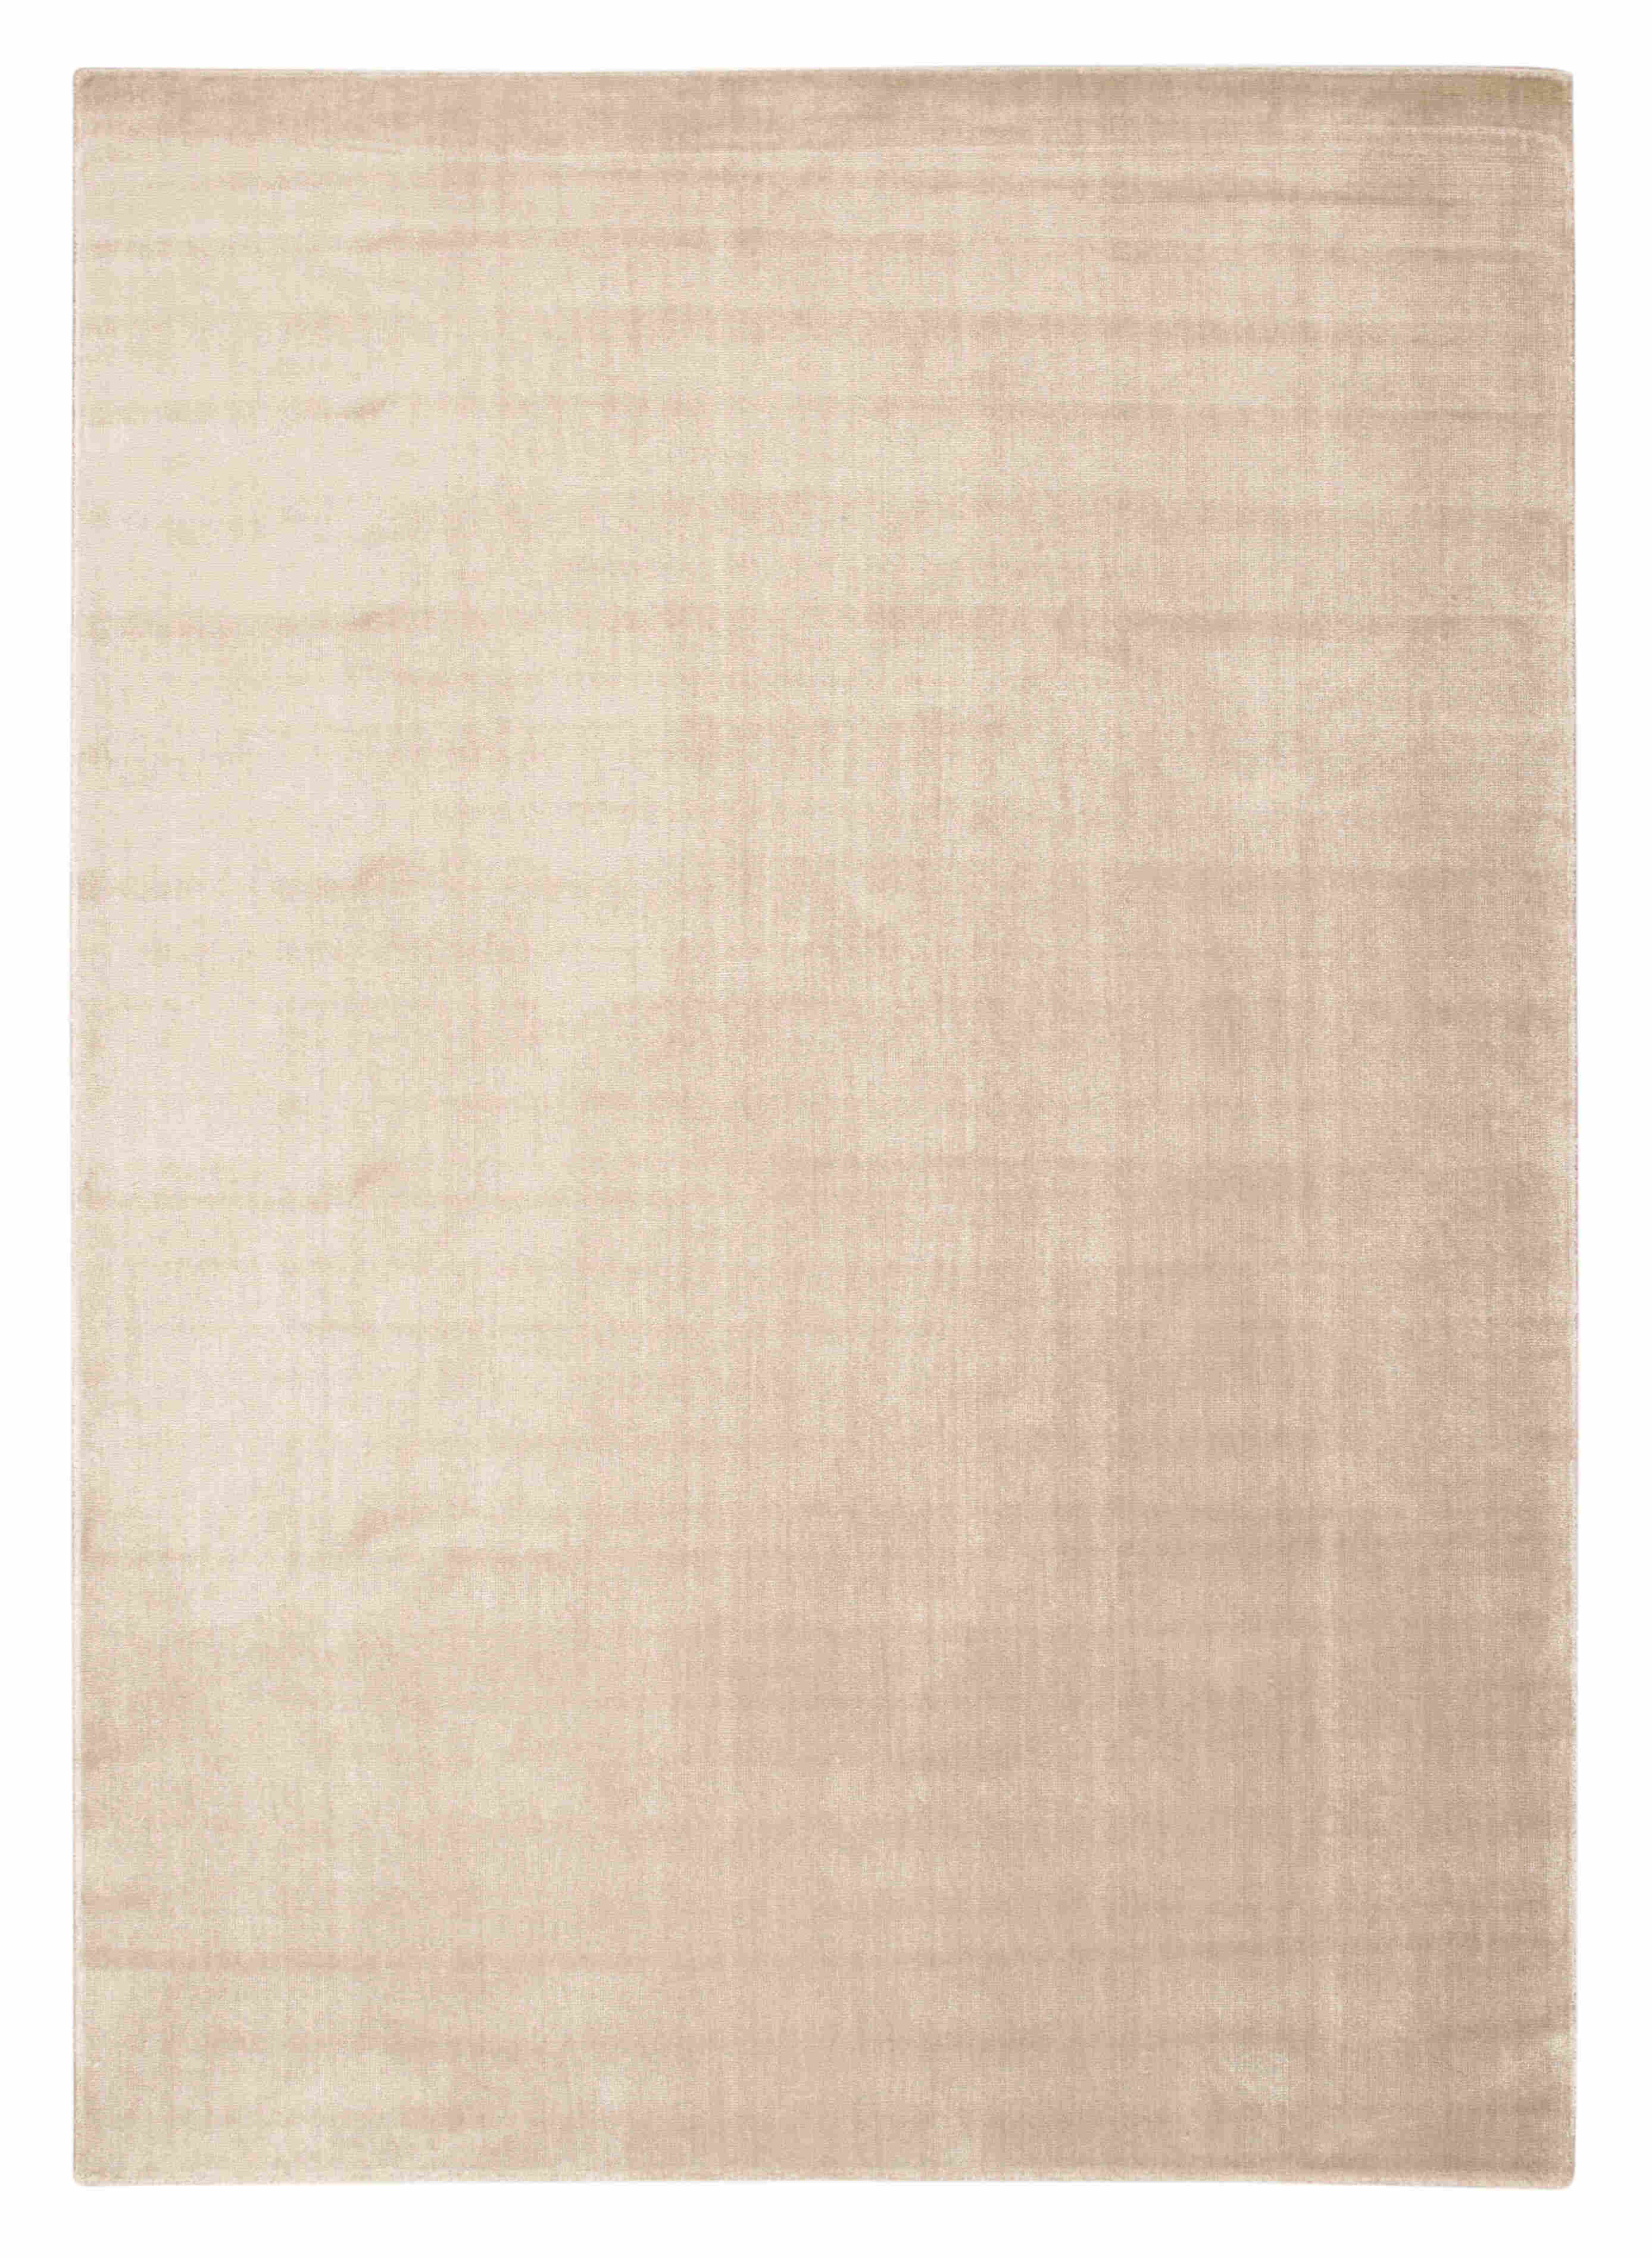 Starlight Machine Woven Seafoam Area Rugs